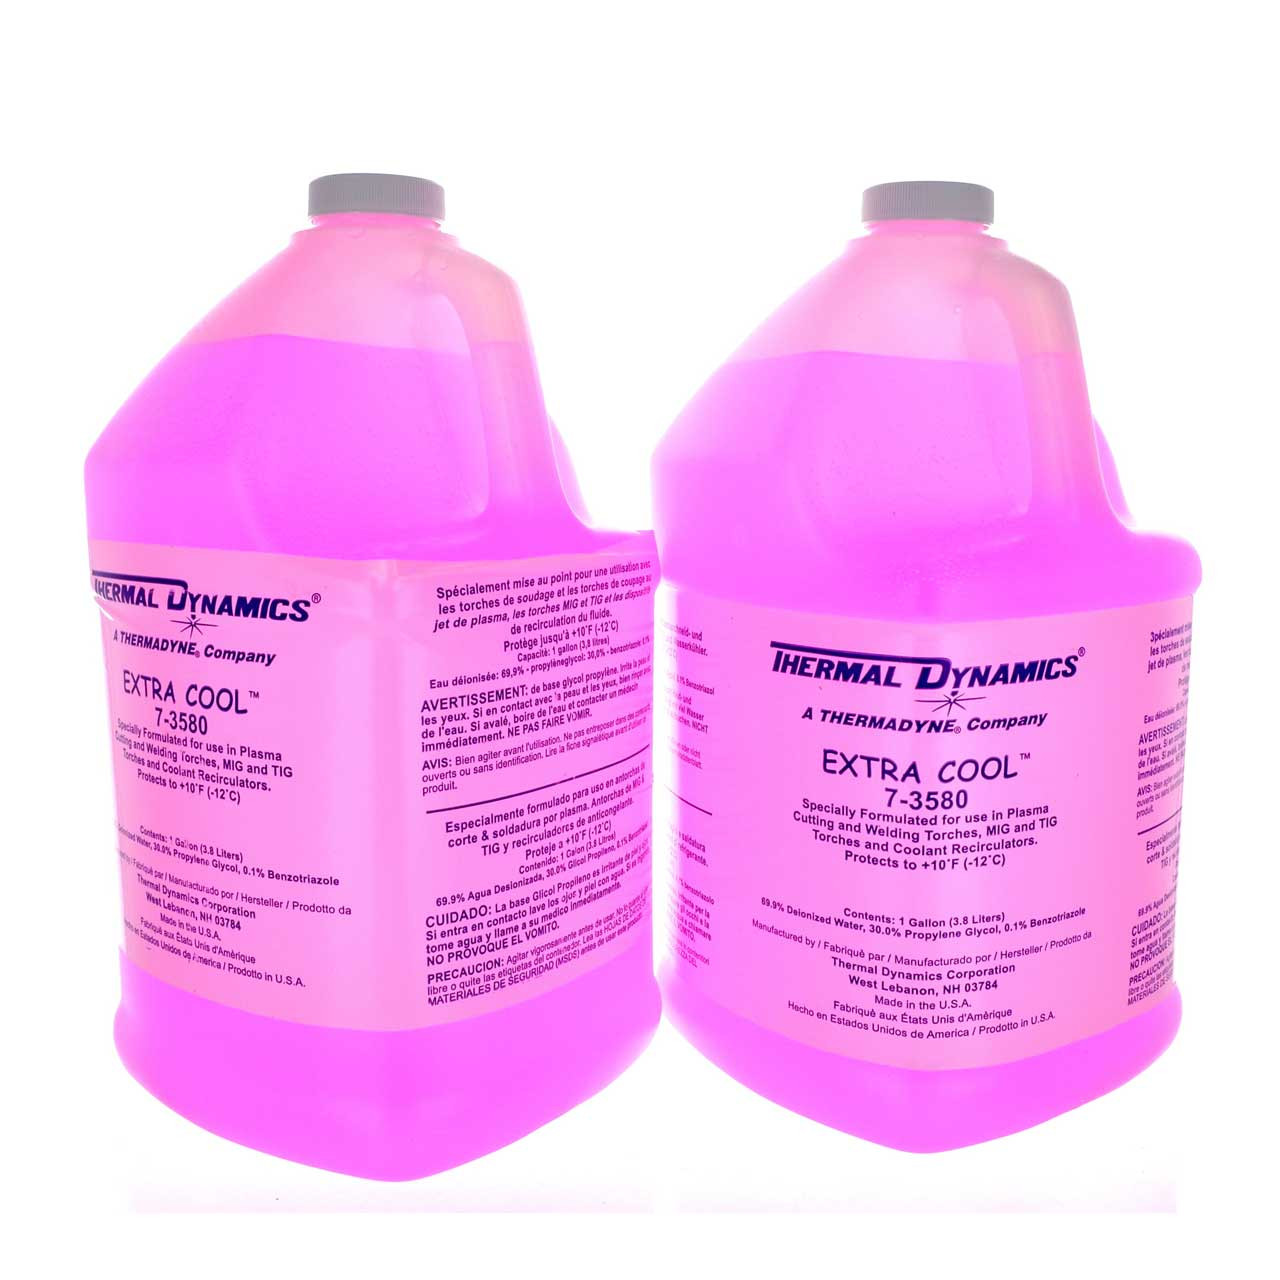 Thermal Dynamics 7-3580 Extra Cool Torch Coolant, 2 pack